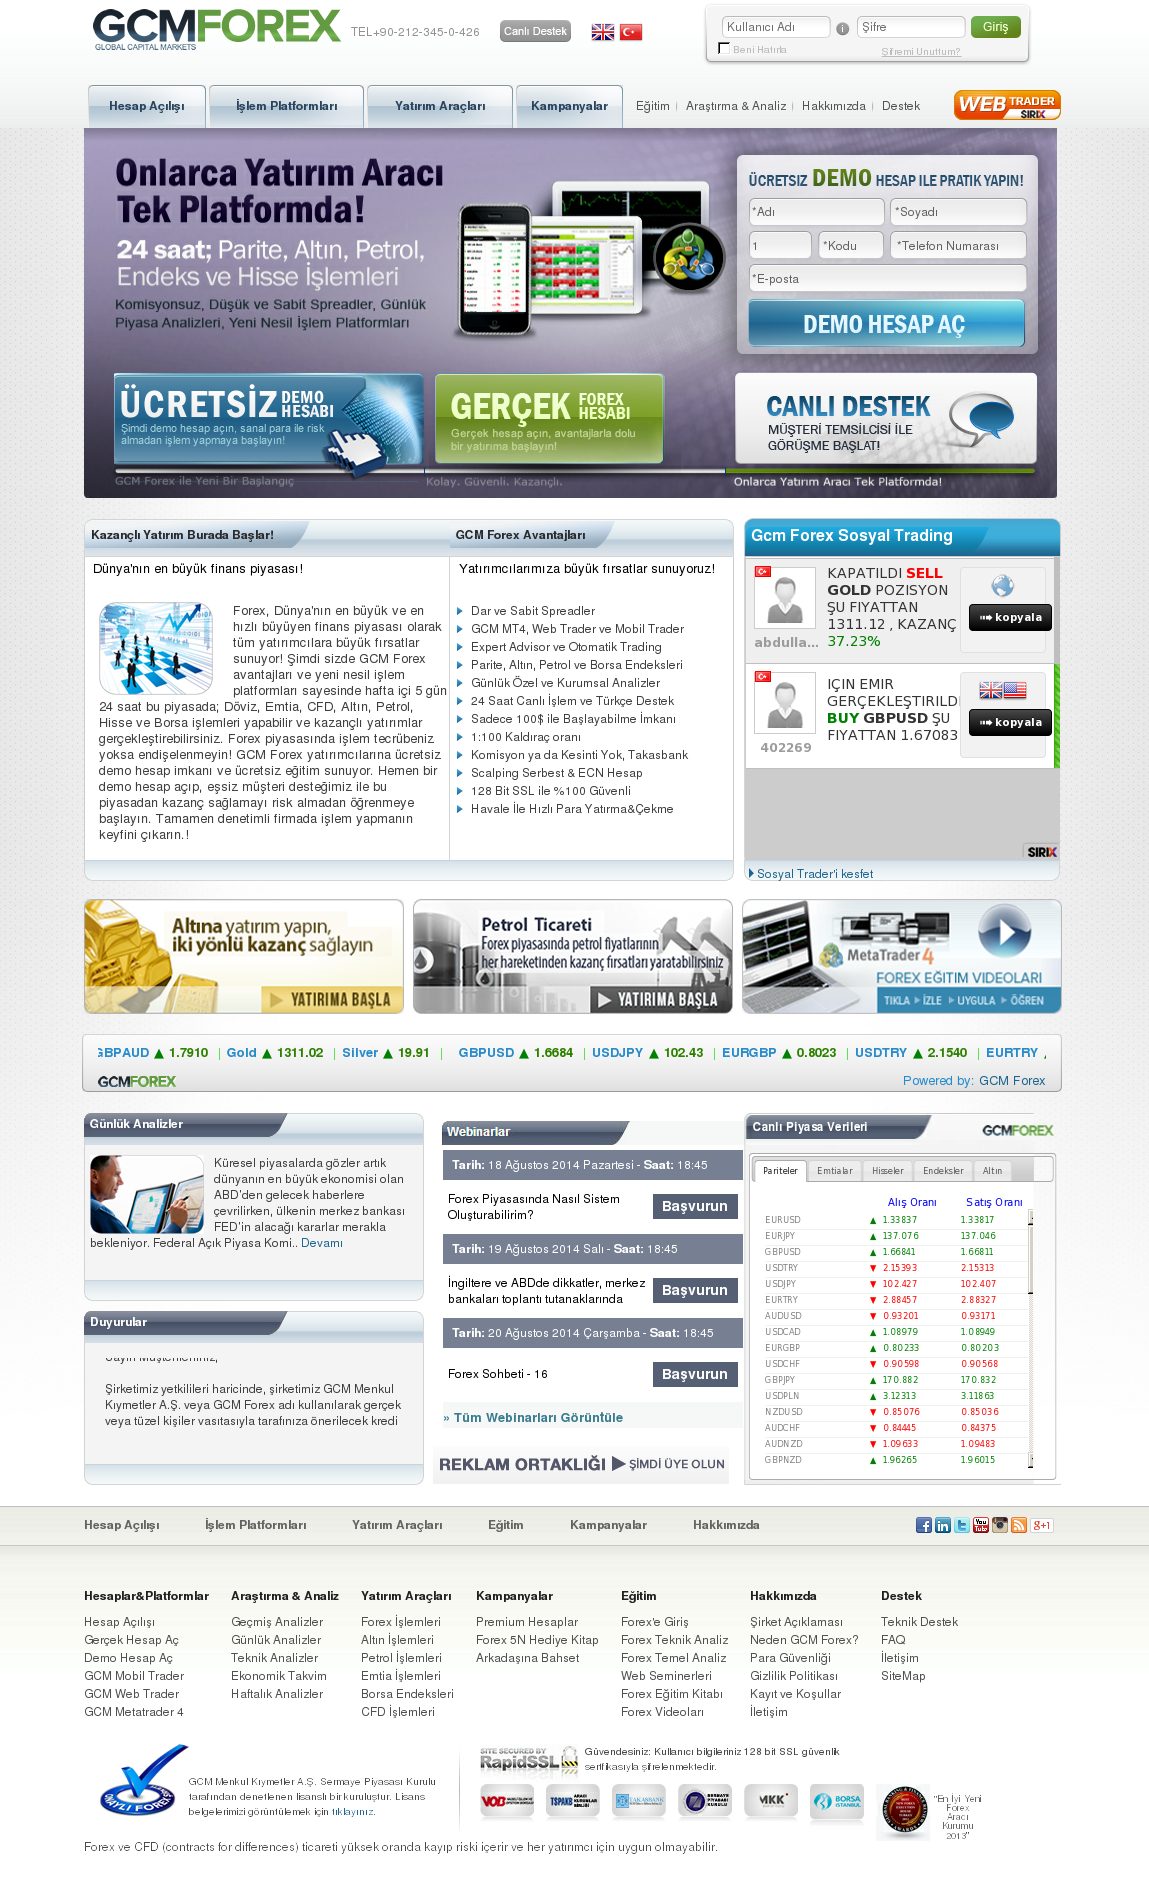 Gcm forex ceo of google forex 1 lot gold